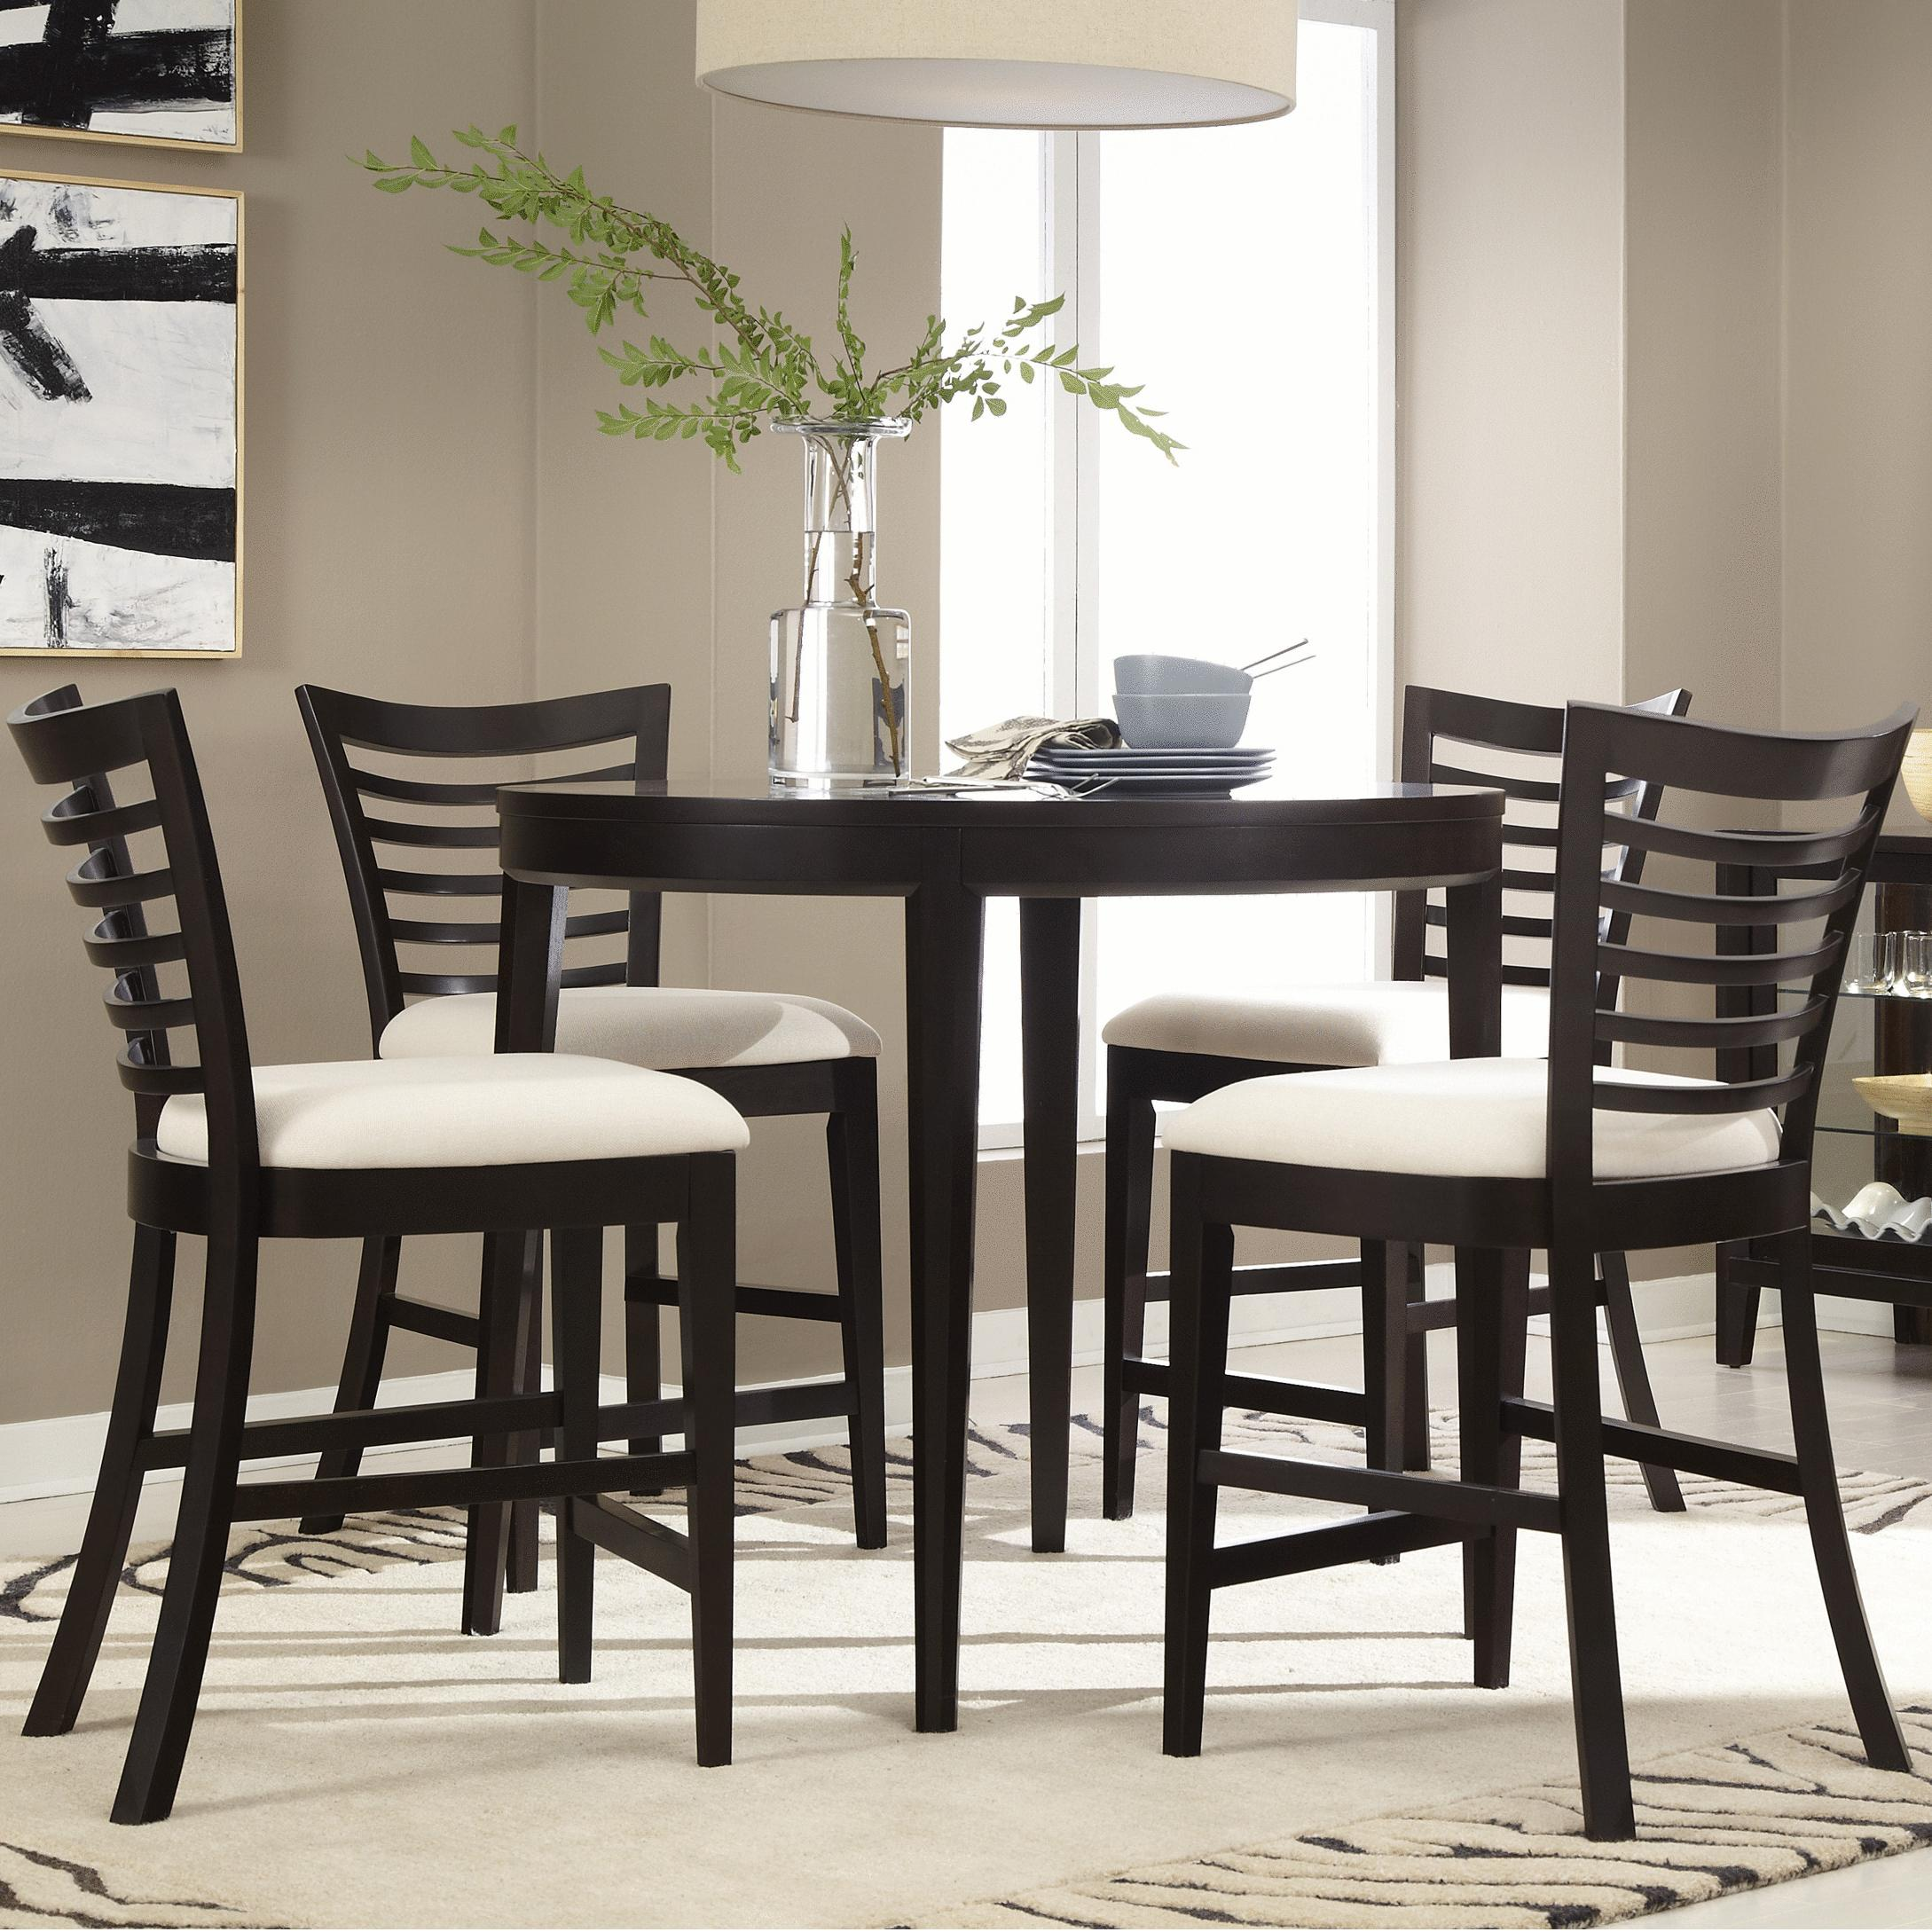 Belfort Select East Gate 5-Pc. Cafe Table and Chairs - Item Number: 355-160+4x140